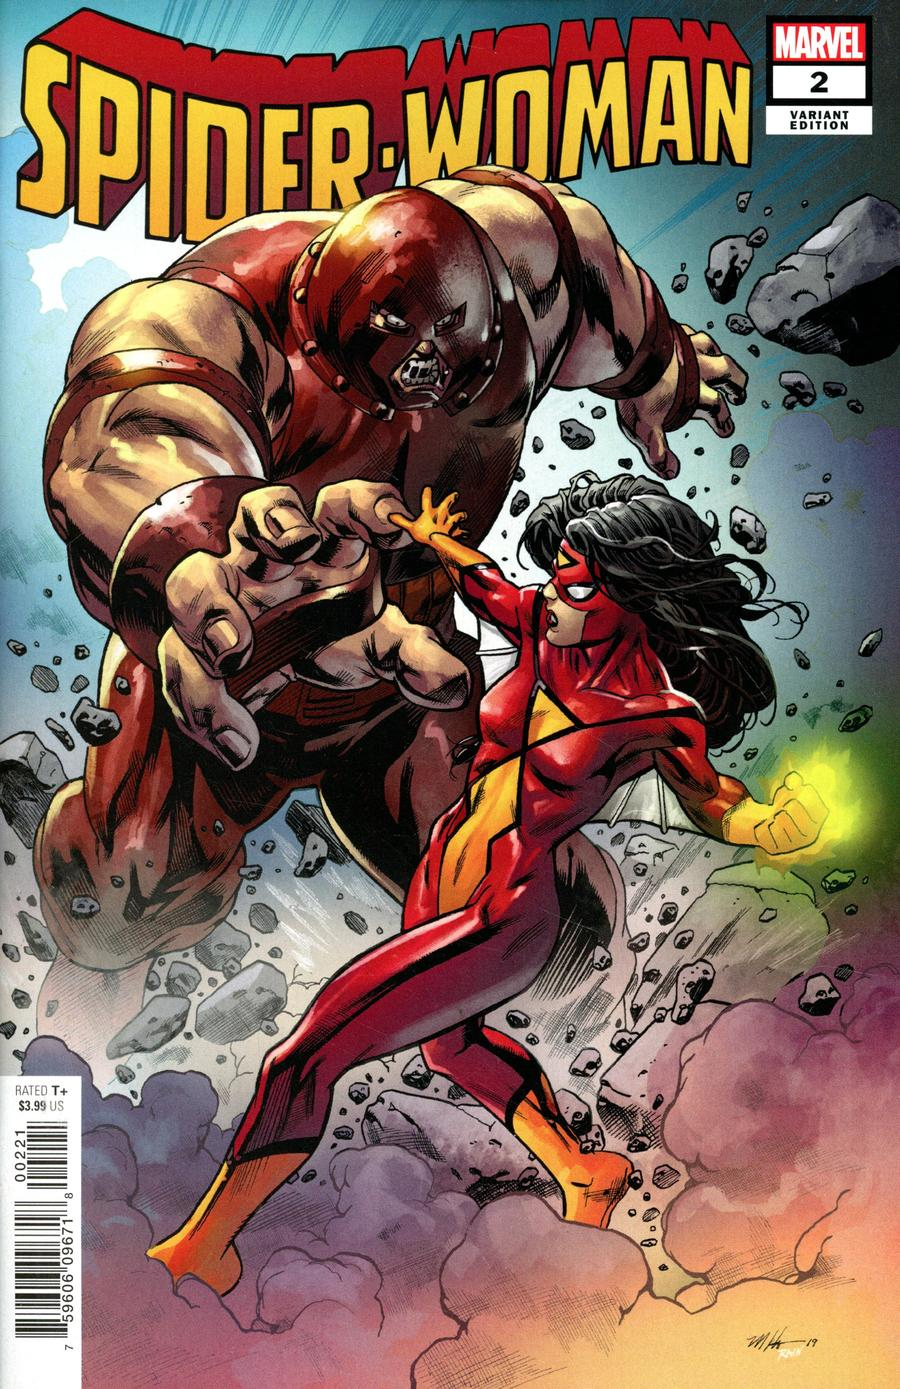 Spider-Woman Vol 7 #2 Cover C Variant Mike Hawthorne Villain Cover